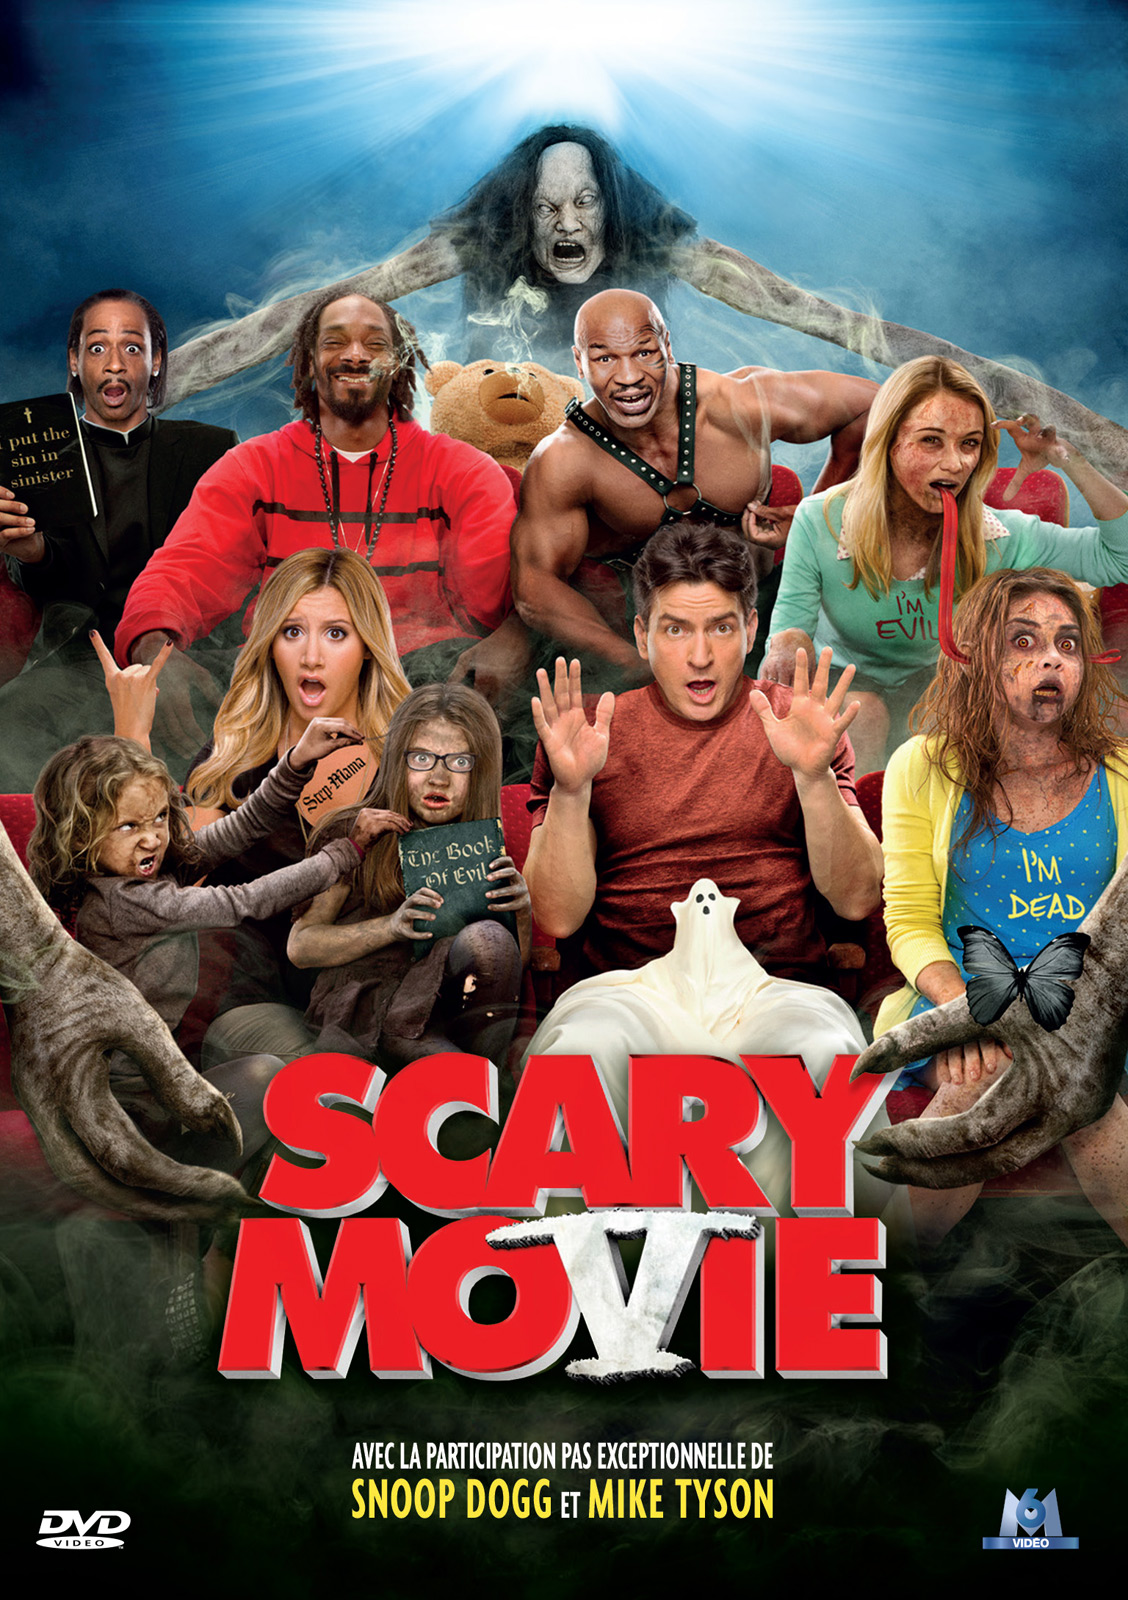 Critique Du Film Scary Movie 5 Allocine